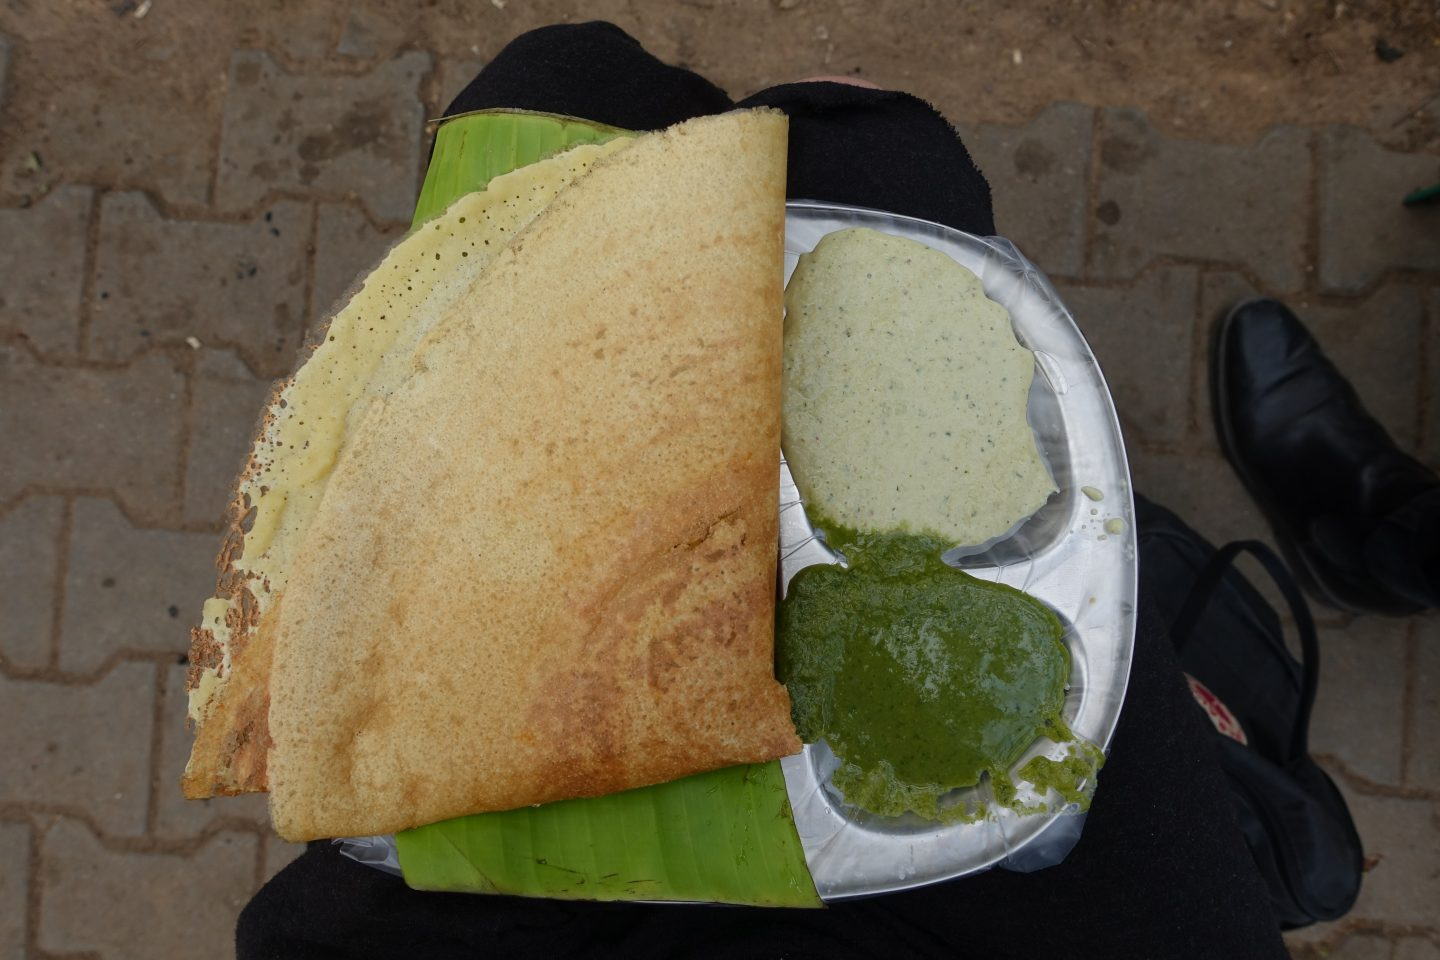 99 variety dosa Vegan Food Bangalore